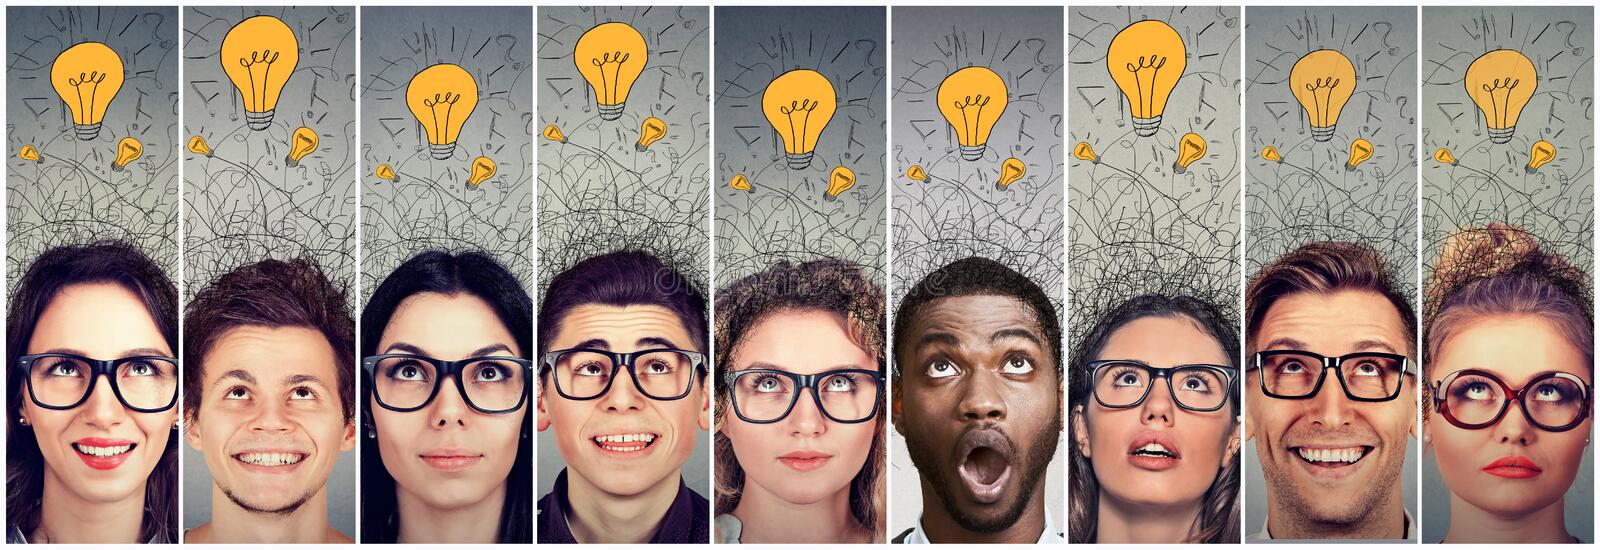 Group of people men and women with many ideas light bulbs above head looking up. royalty free stock photos